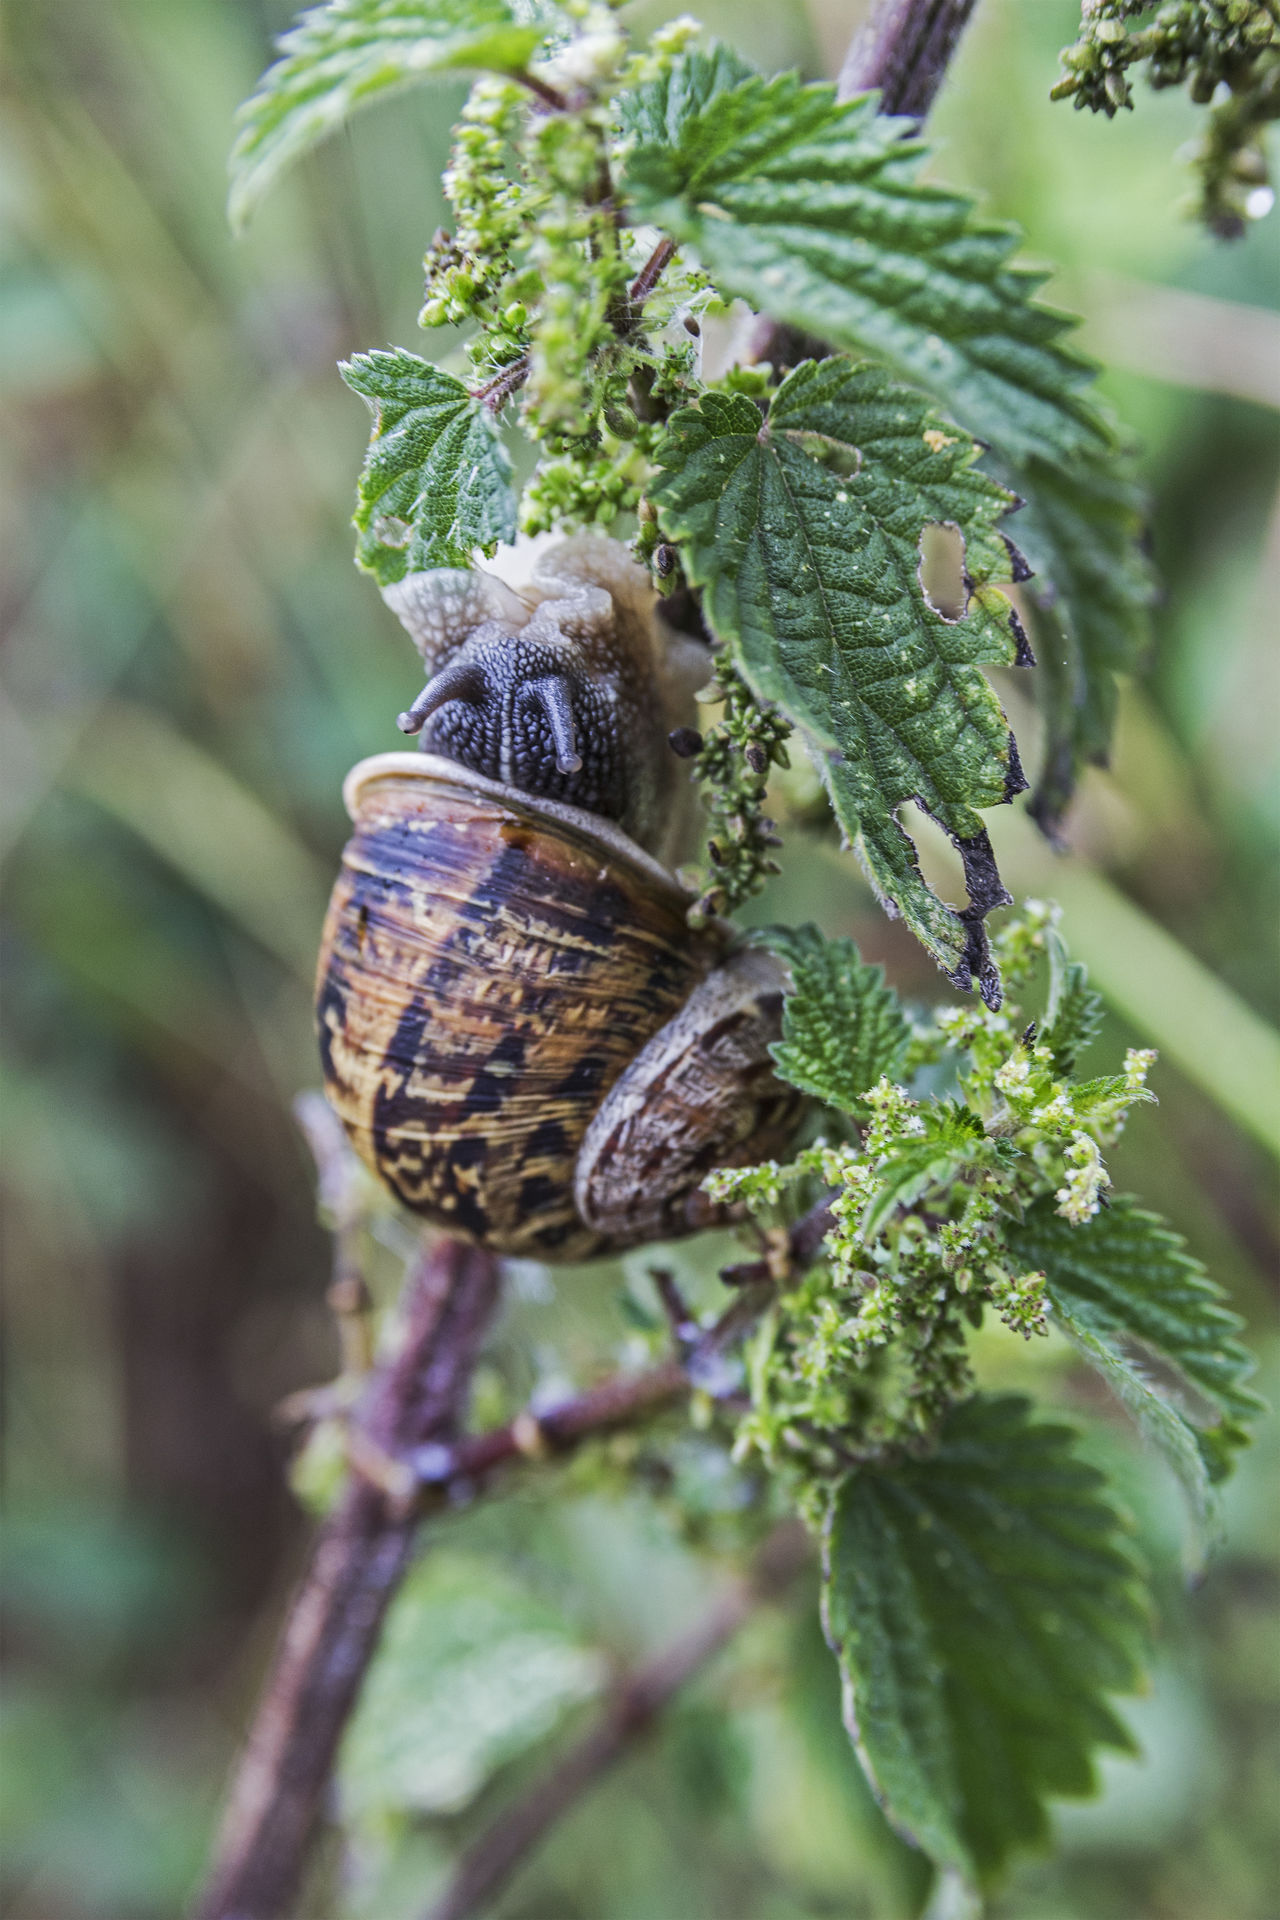 Garden snail consuming a plant. Eating Garden Landscape Molusc People Shell Snail Vegetables